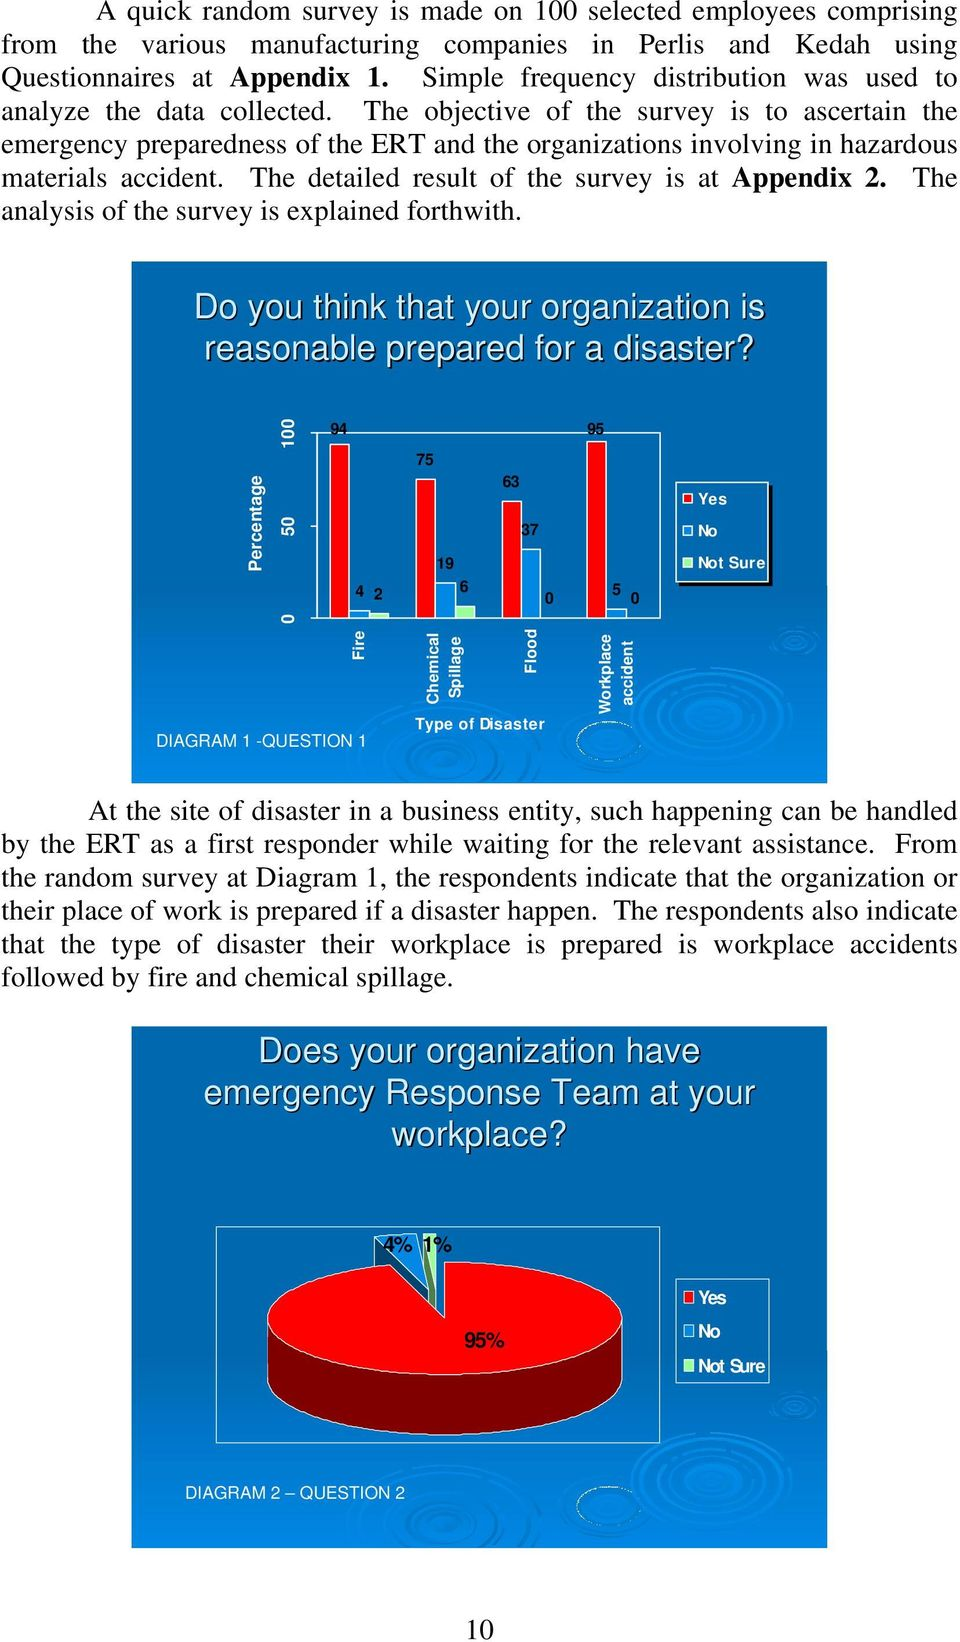 The objective of the survey is to ascertain the emergency preparedness of the ERT and the organizations involving in hazardous materials accident. The detailed result of the survey is at Appendix 2.